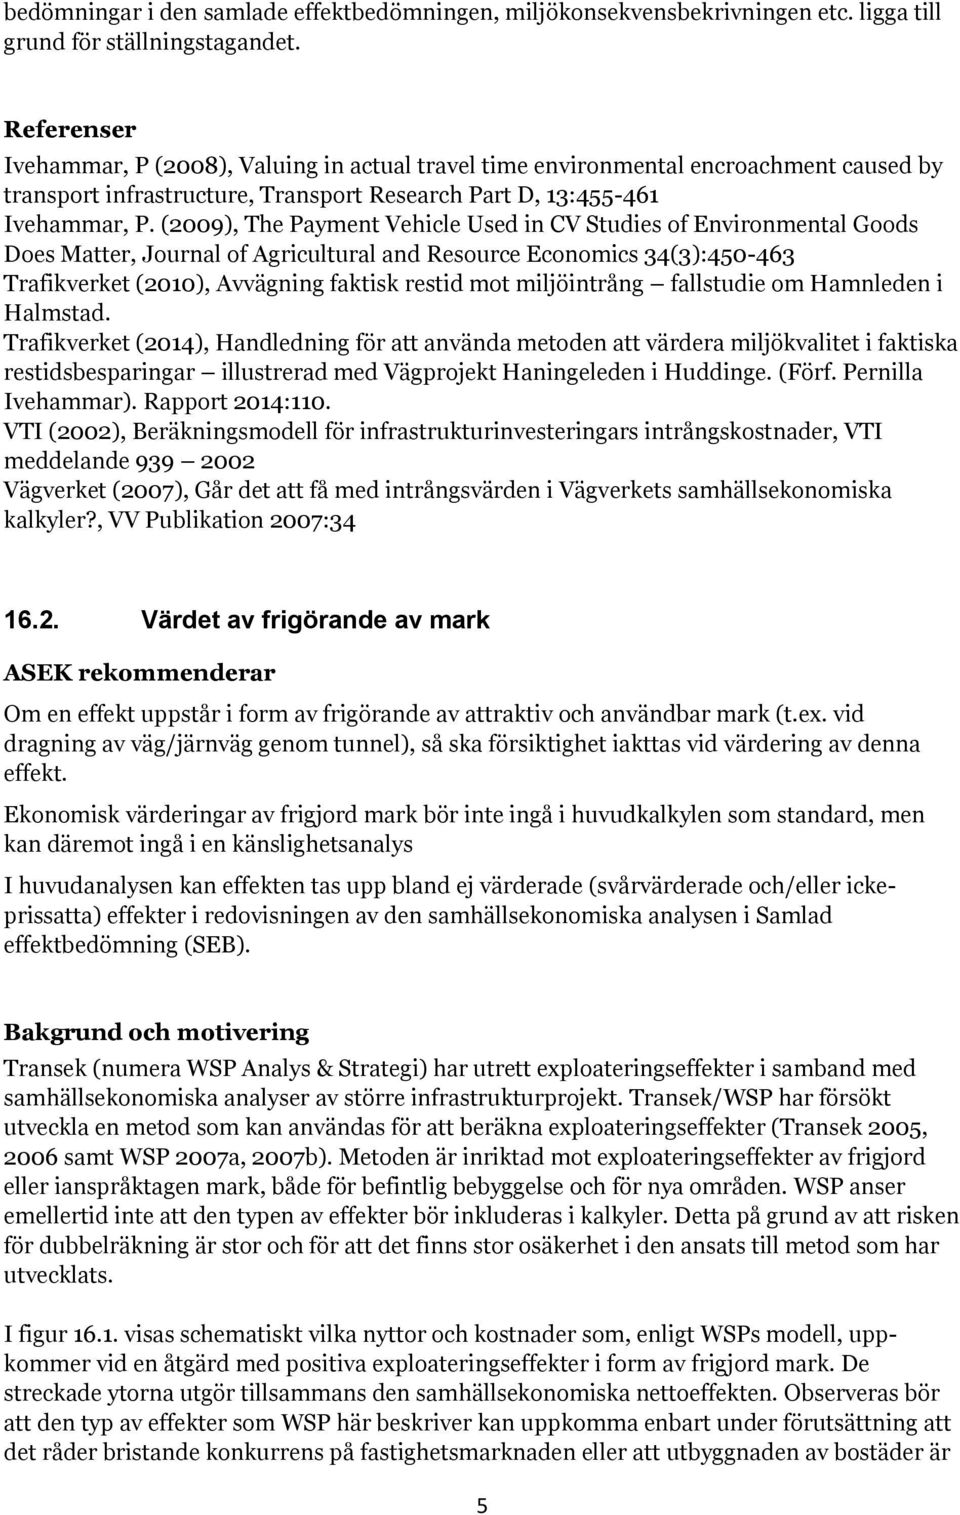 (2009), The Payment Vehicle Used in CV Studies of Environmental Goods Does Matter, Journal of Agricultural and Resource Economics 34(3):450-463 Trafikverket (2010), Avvägning faktisk restid mot